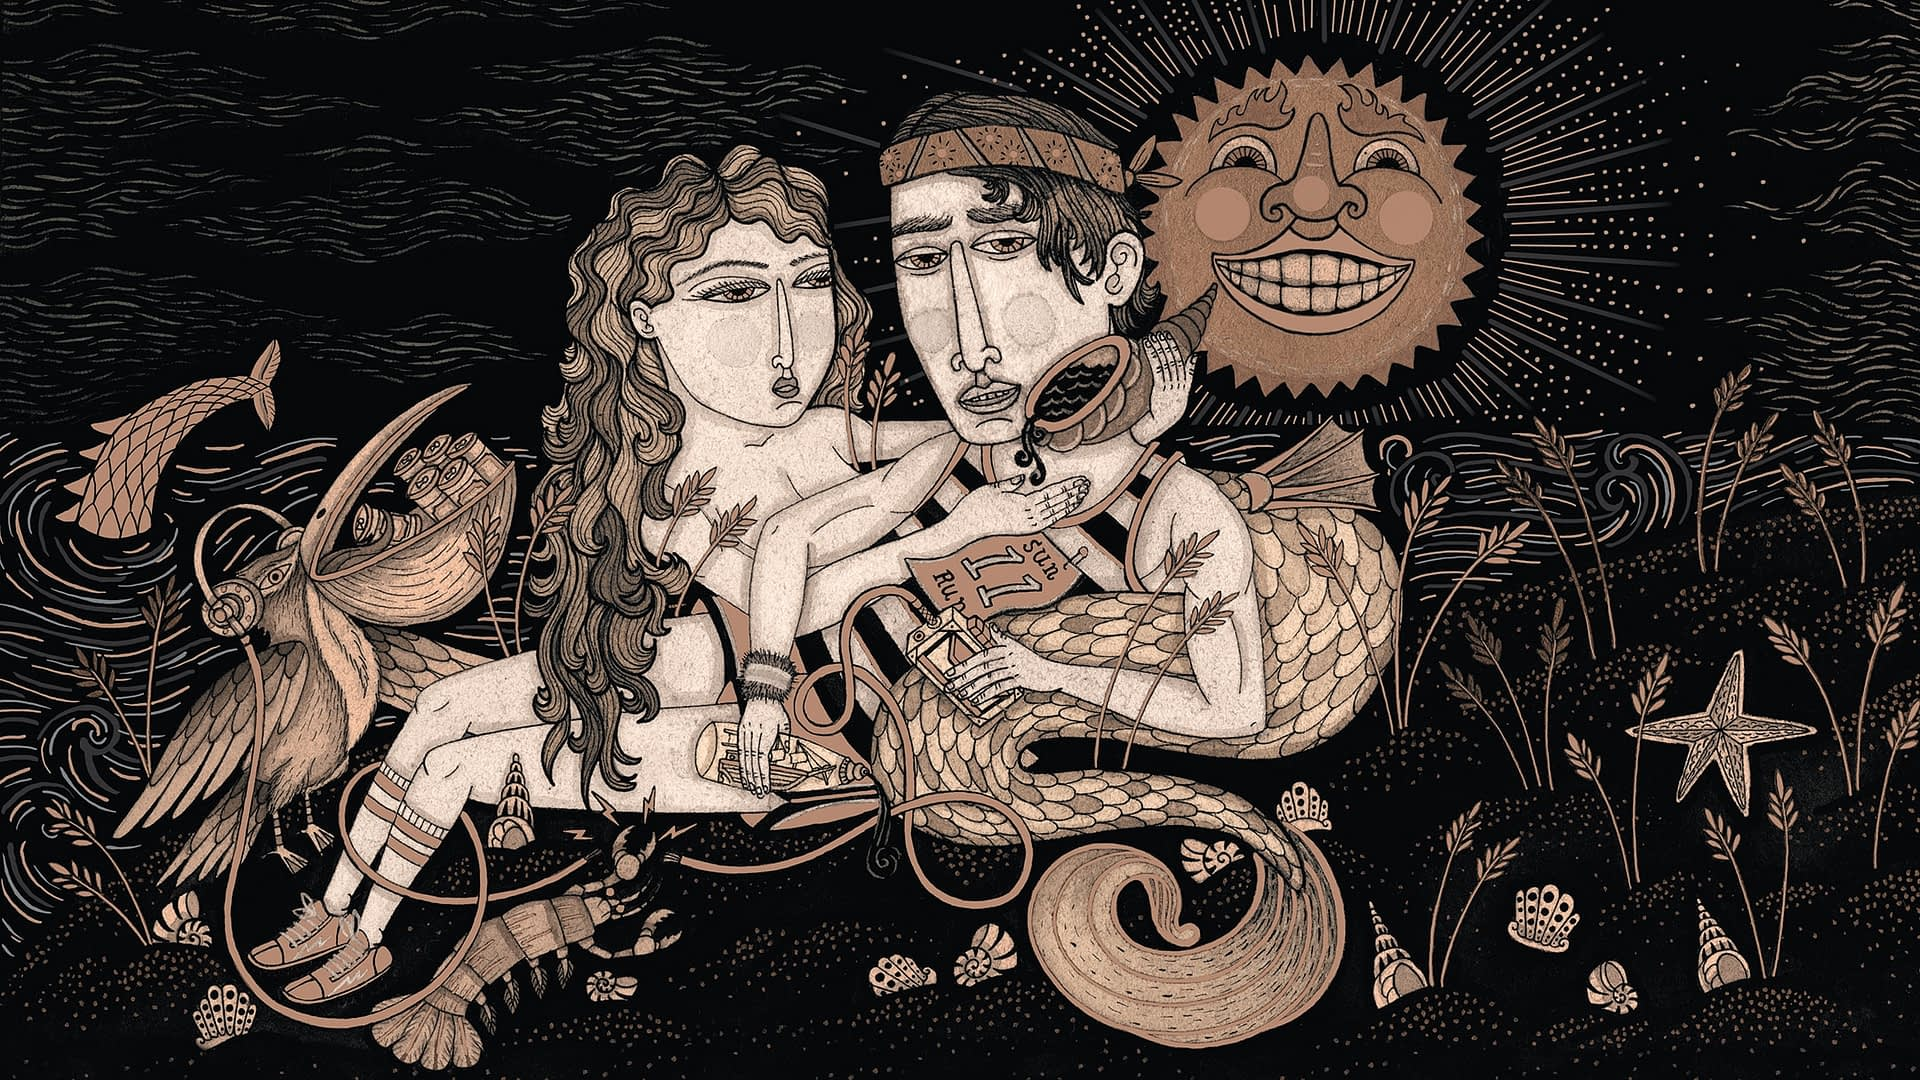 Illustrations used for Coppertail Beer Bottle Design and packaging. Merman and woman featured on Wheat Stroke.